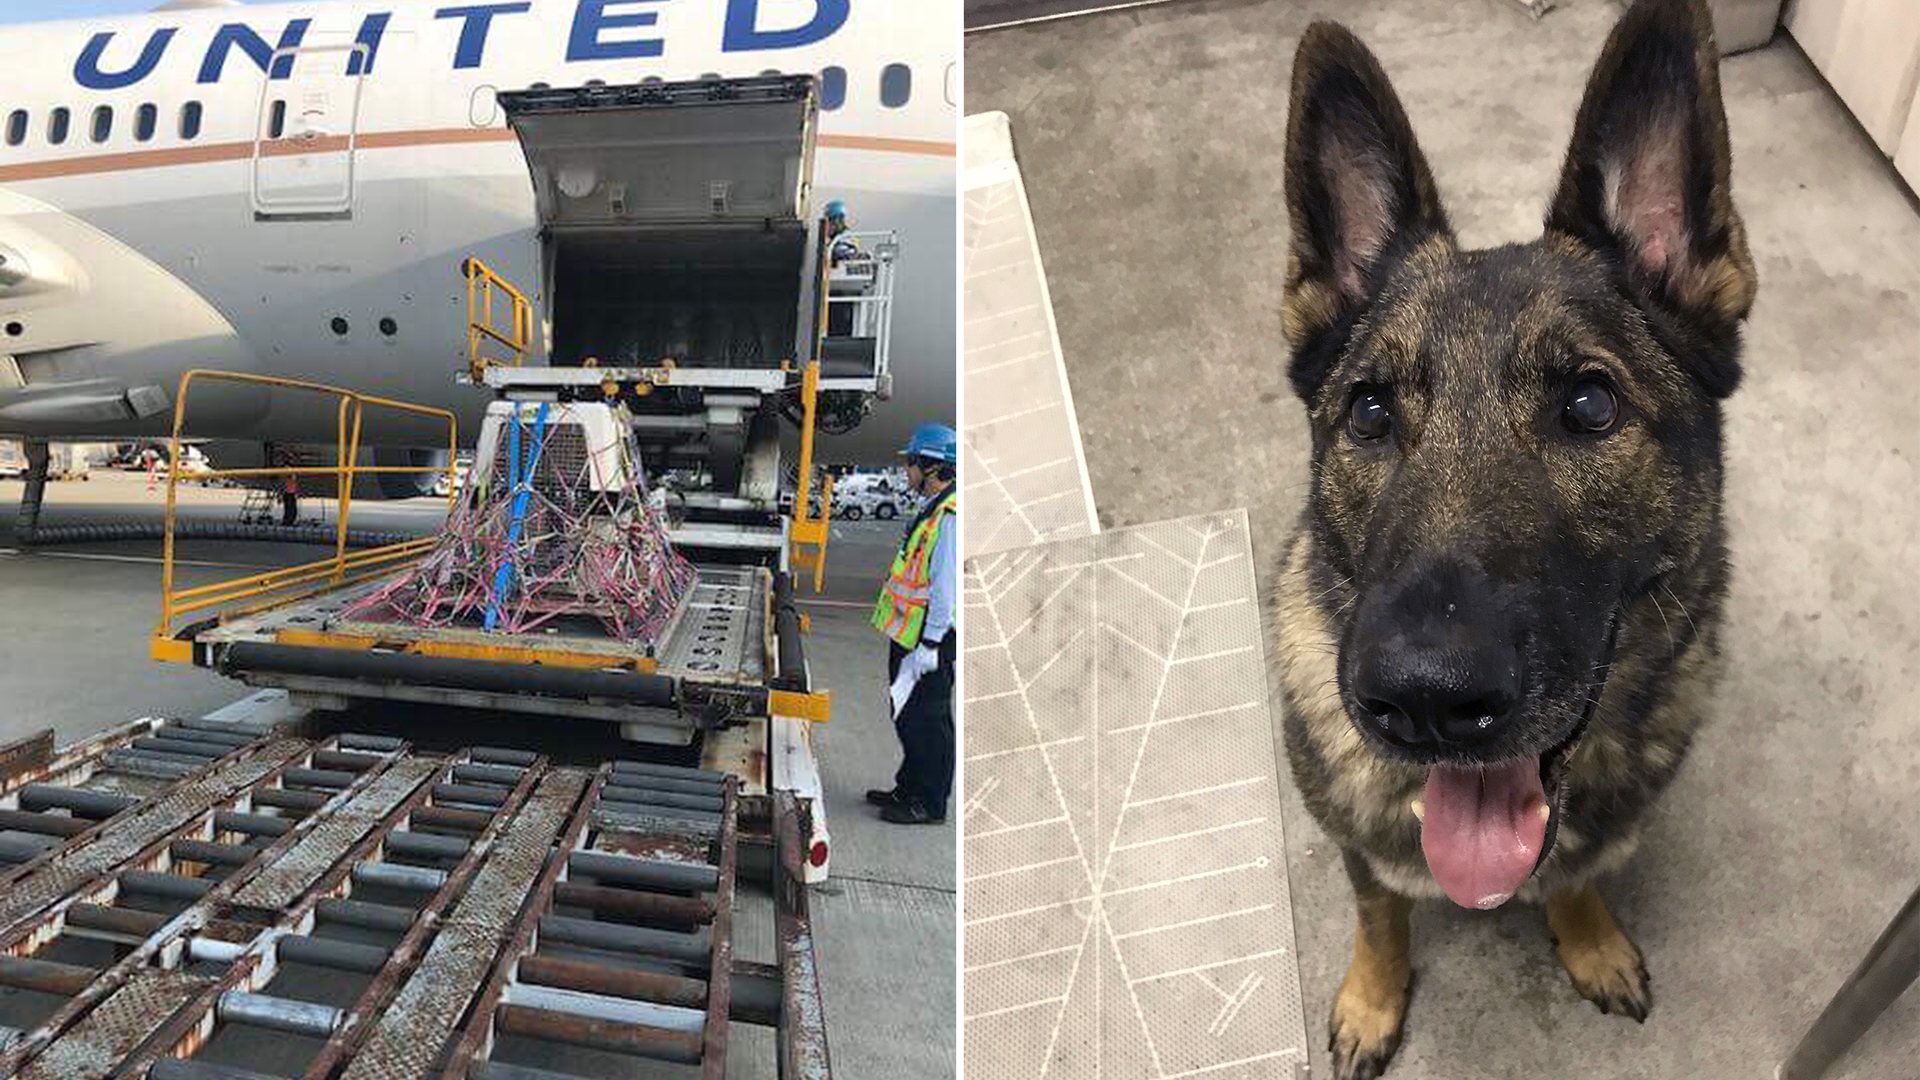 United Airlines Accidentally Sends Dog To Japan